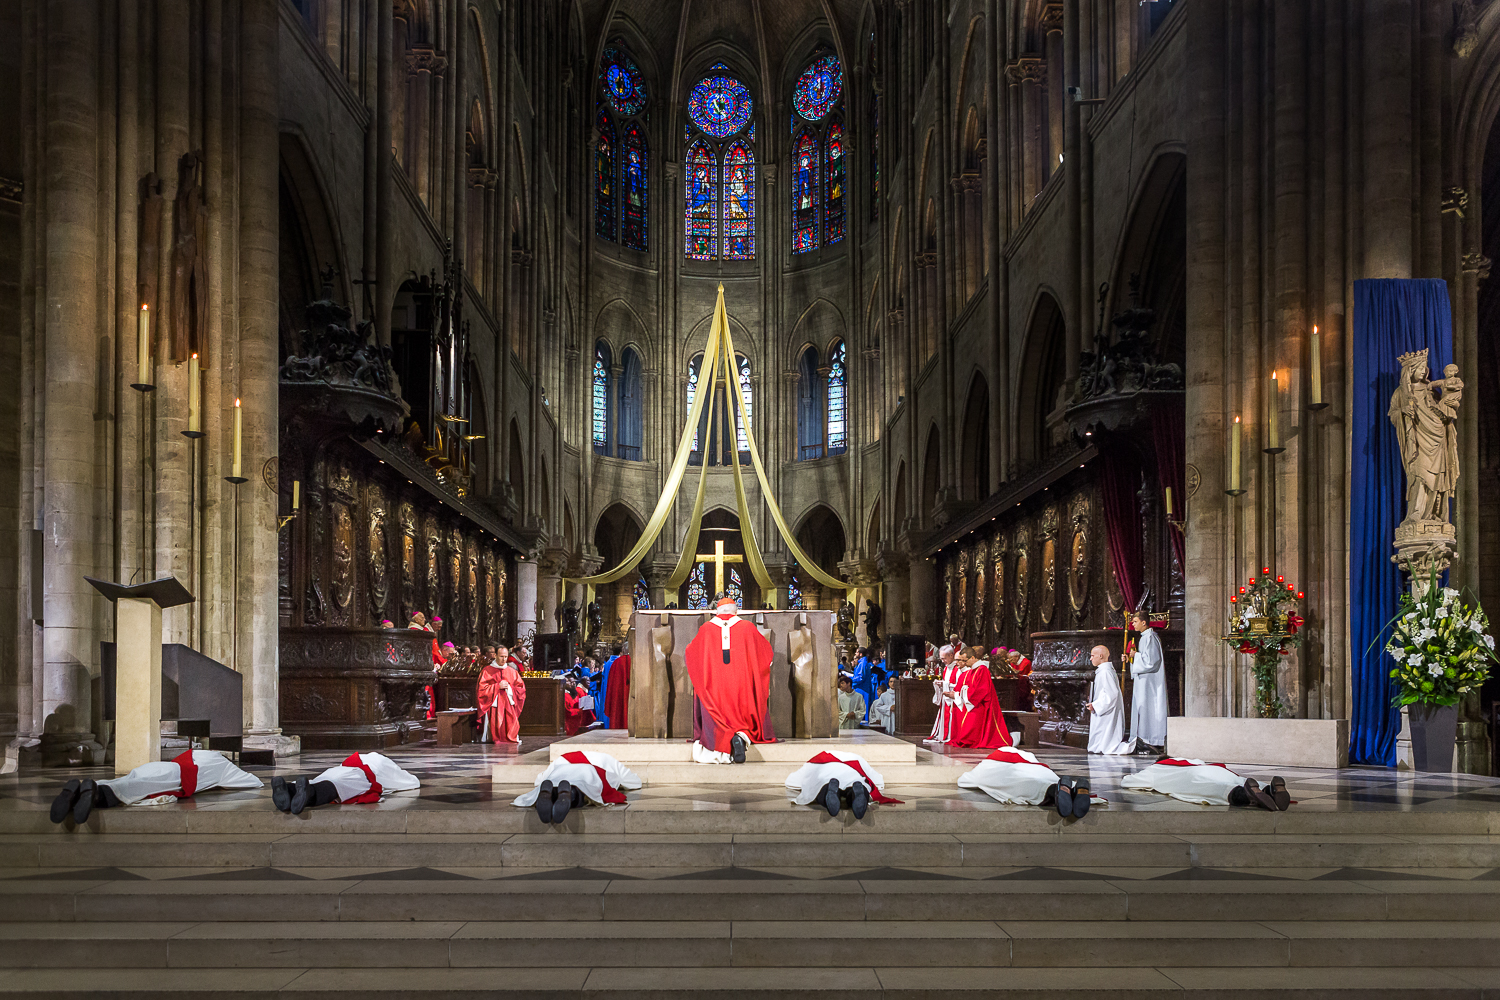 Rite de la prostration de l' ordination diaconale. Paris, 29 juin 2013. © Sébastien Borda